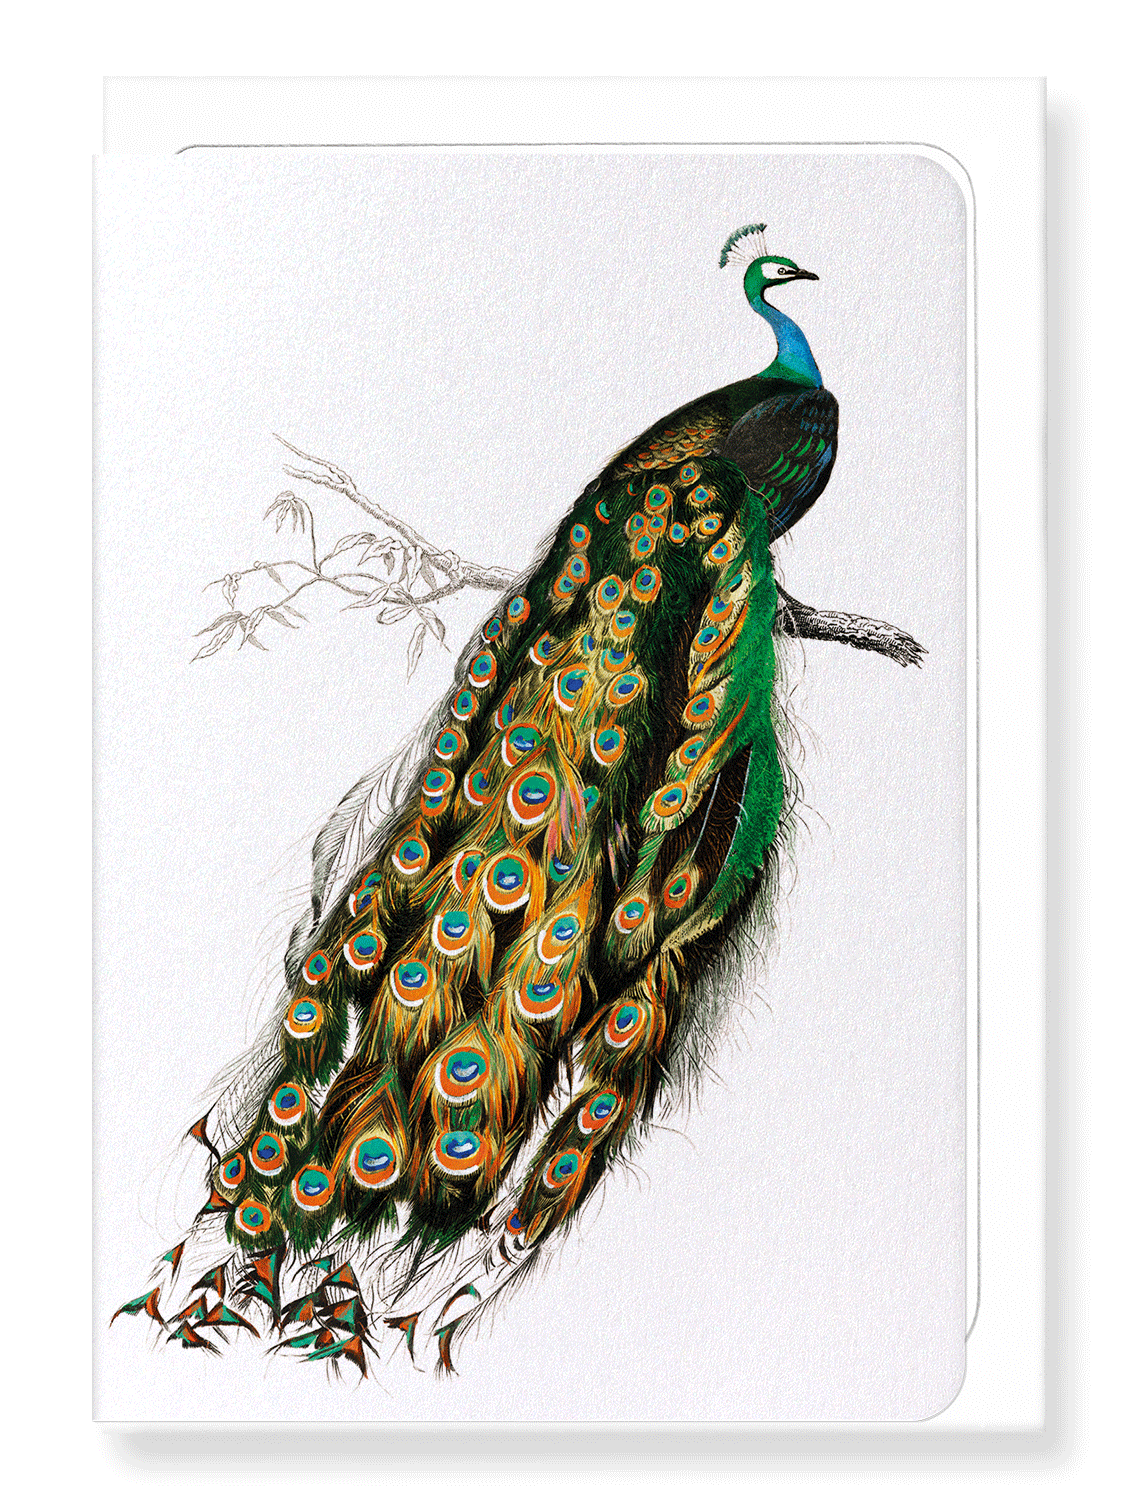 Ezen Designs - Indian peafowl - Greeting Card - Front